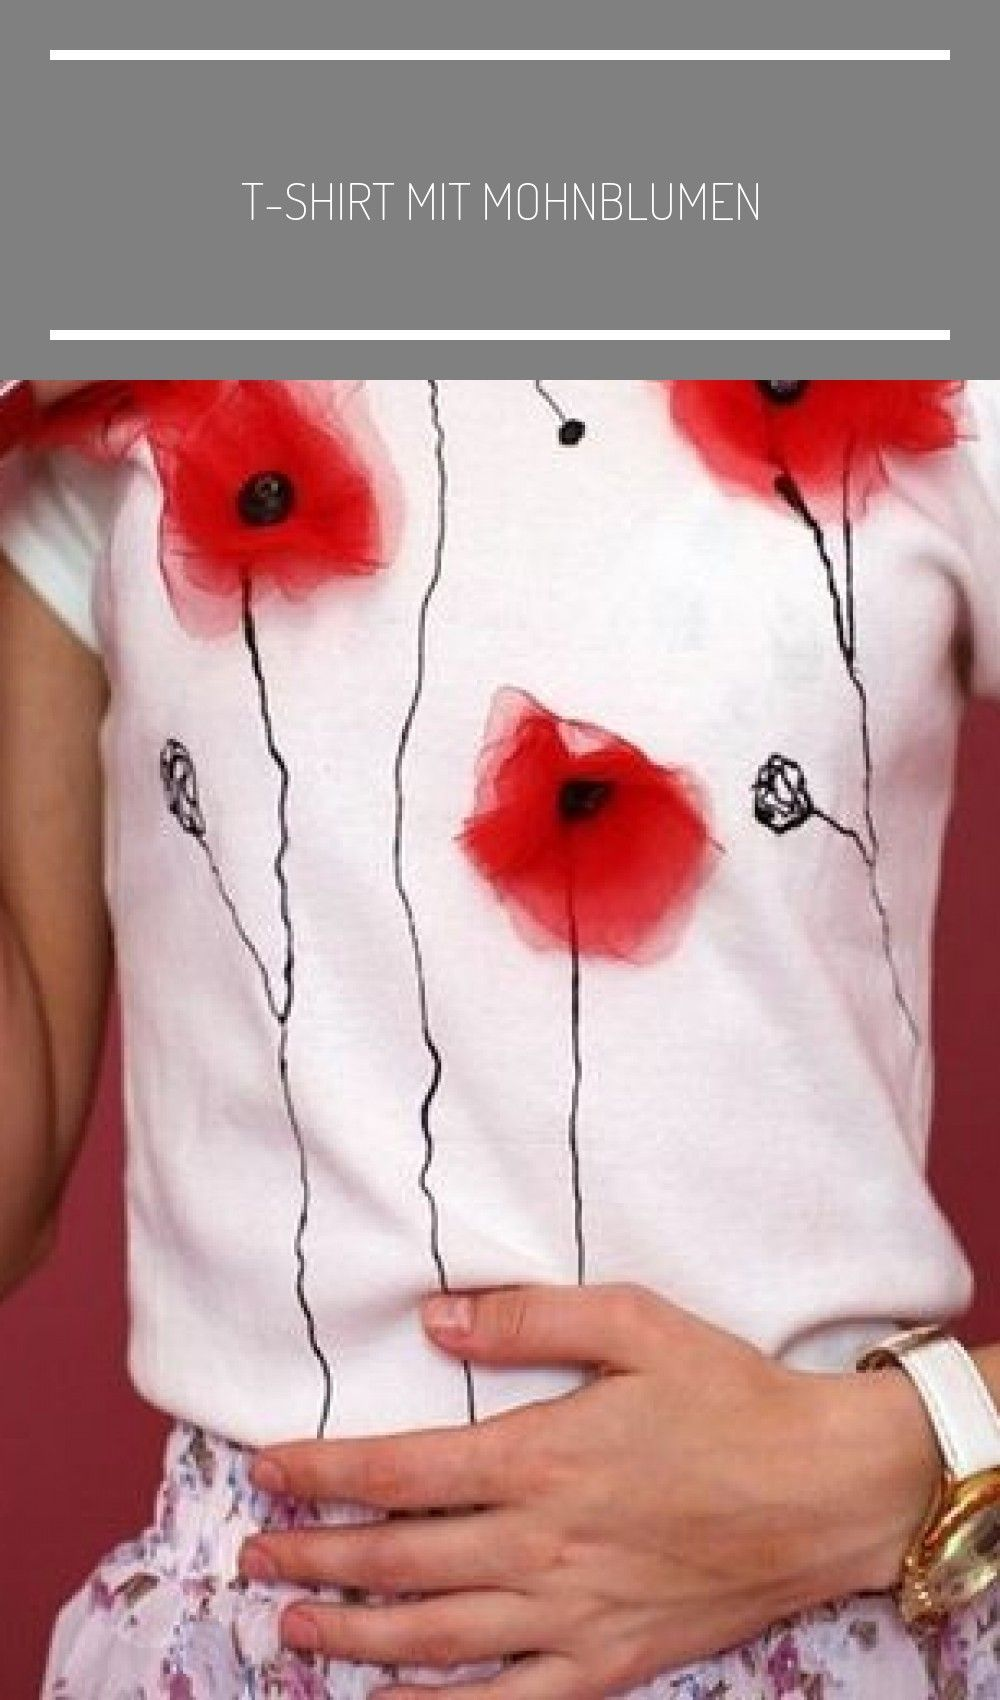 T Shirt With Poppies Upcycled Clothing Up Cycle T Shirt With Poppies Clothing Cycle Poppies Tshirt Upcycl In 2020 Diy Fashion Tshirt Diy Fashion Diy Clothes